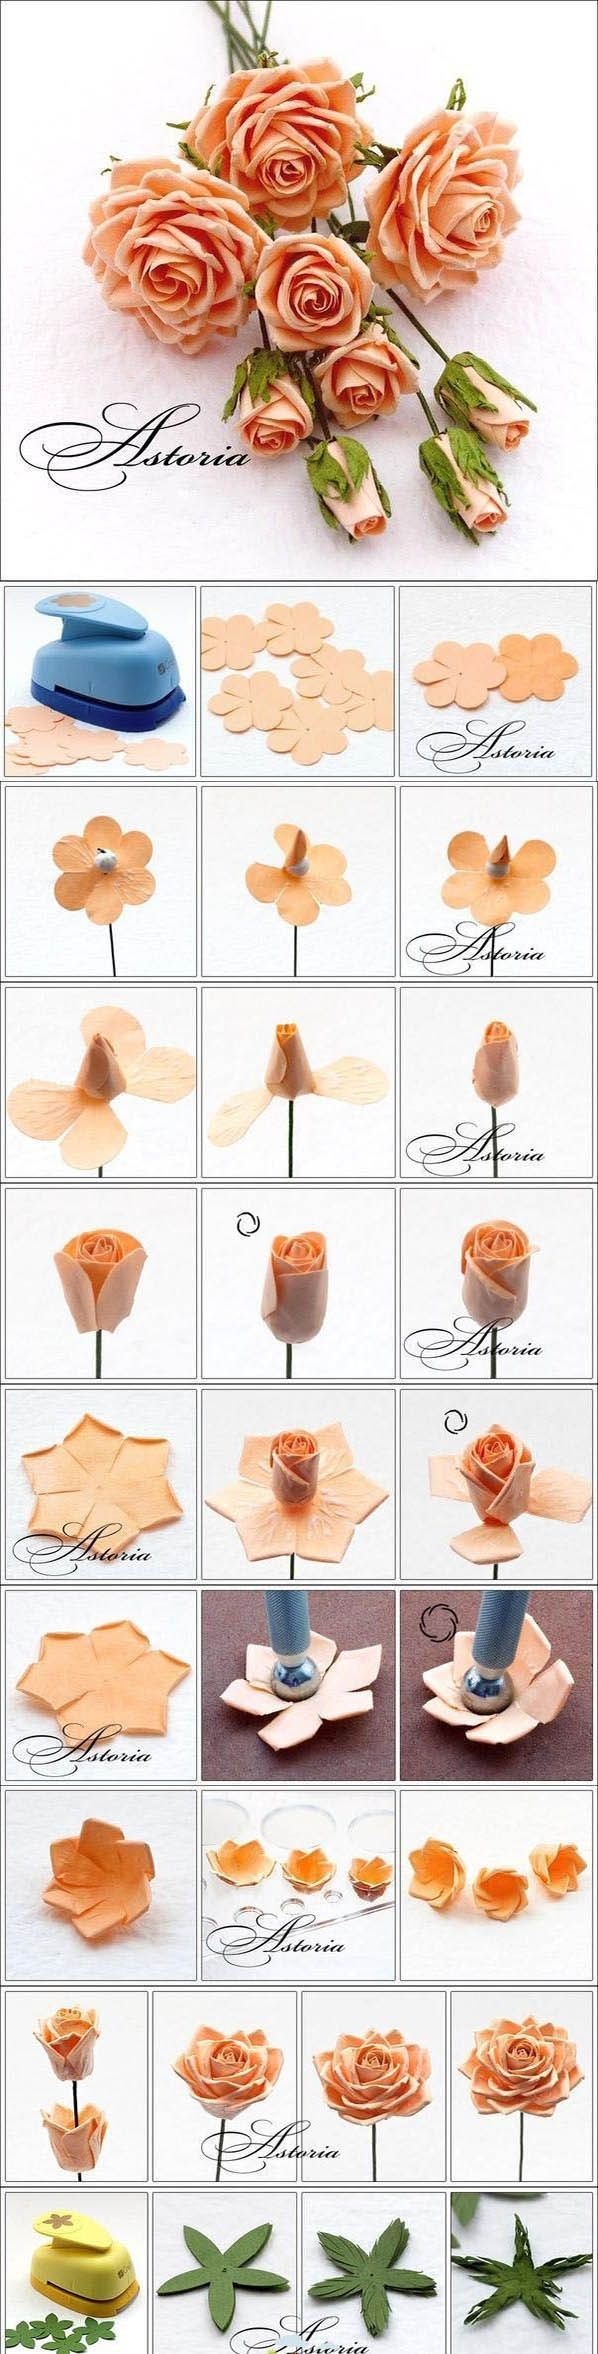 Beautiful Pink Rose | DIY & Crafts Tutorials Never thought to do fake roses but I'll give it a try